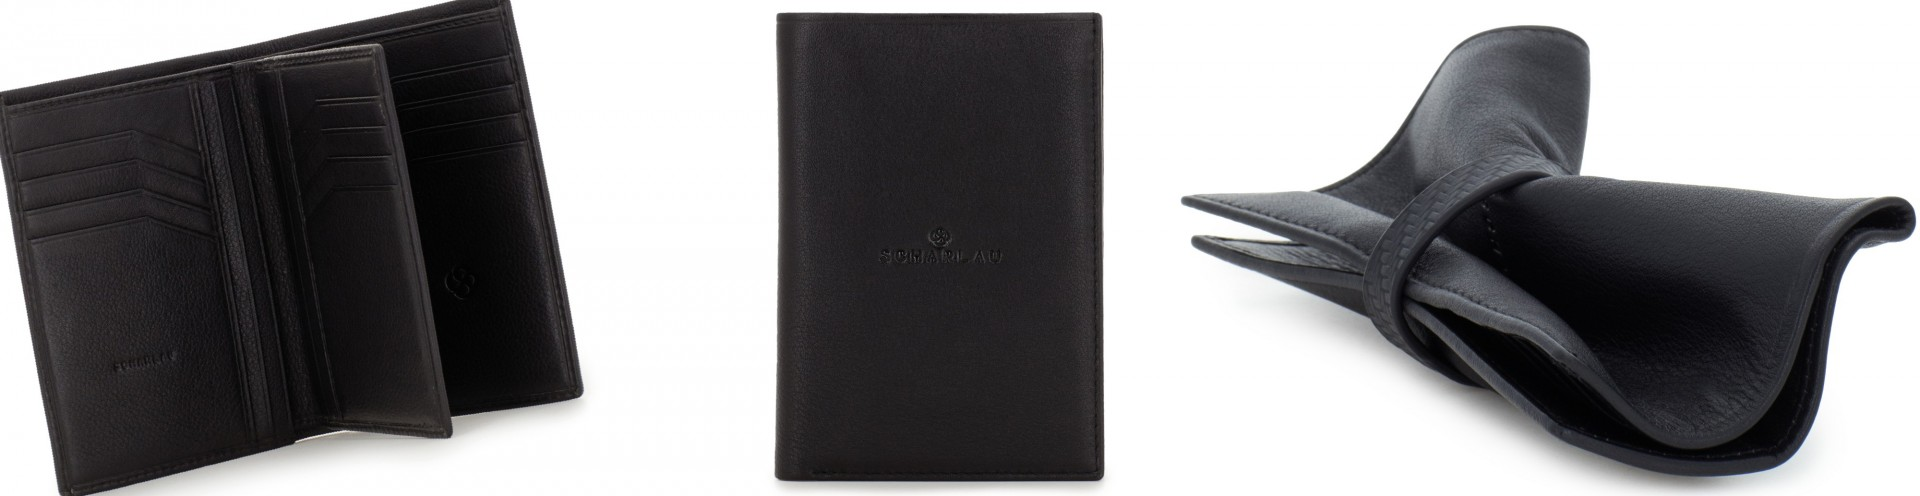 High Quality Leather Men's Wallets Gent Collection